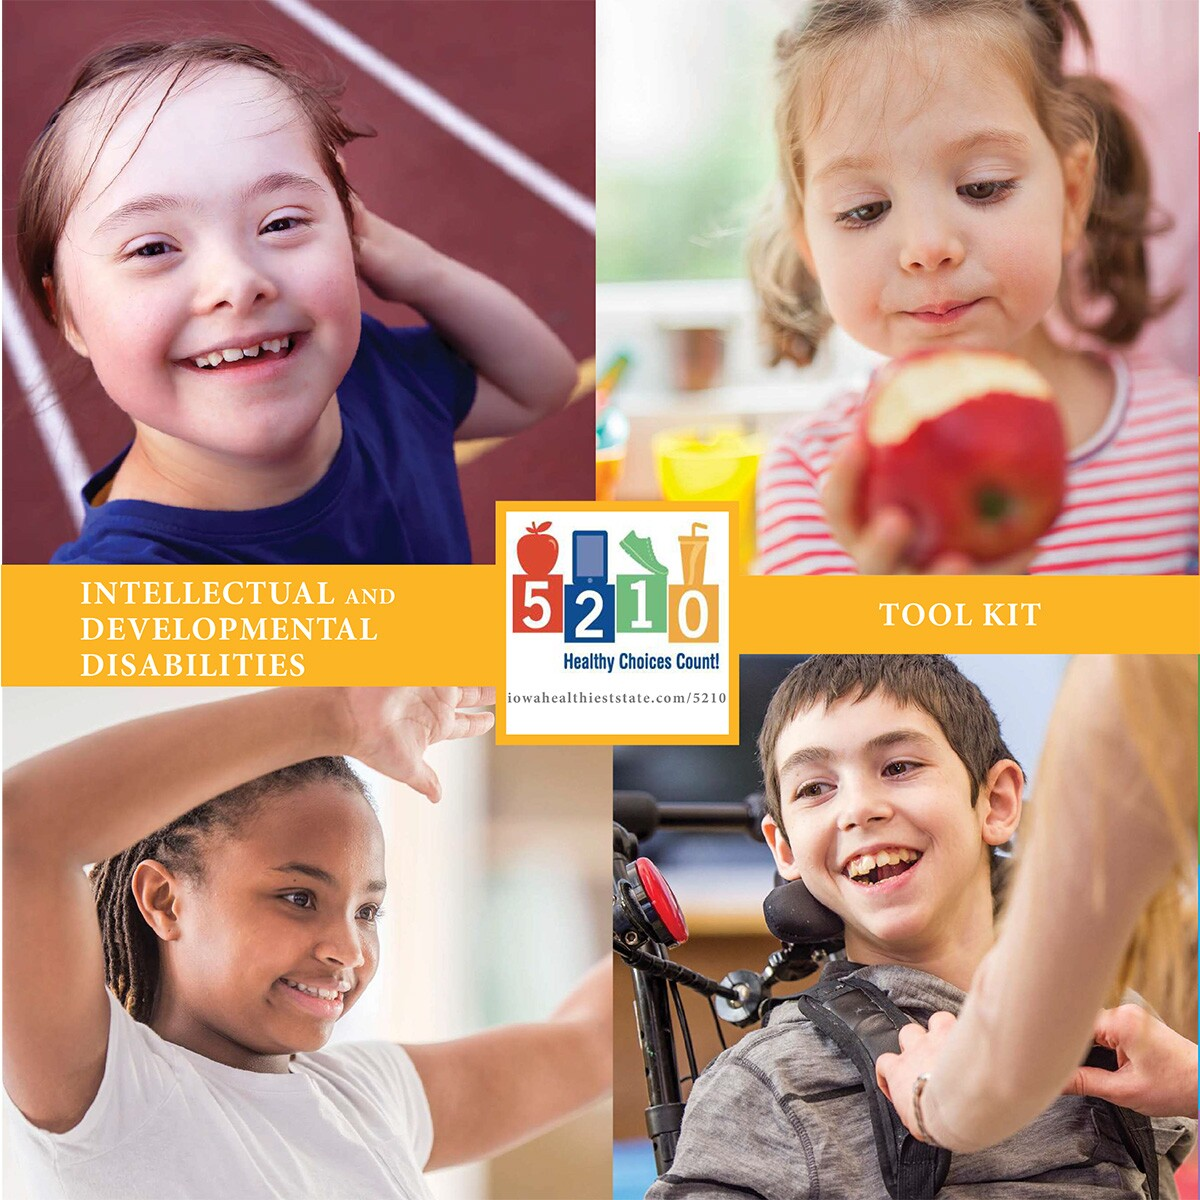 5210 Healthy Choices Count!, Iowa, American Academy of Pediatrics - Intellectual and Developmental Disabilities Tool Kit Cover Image